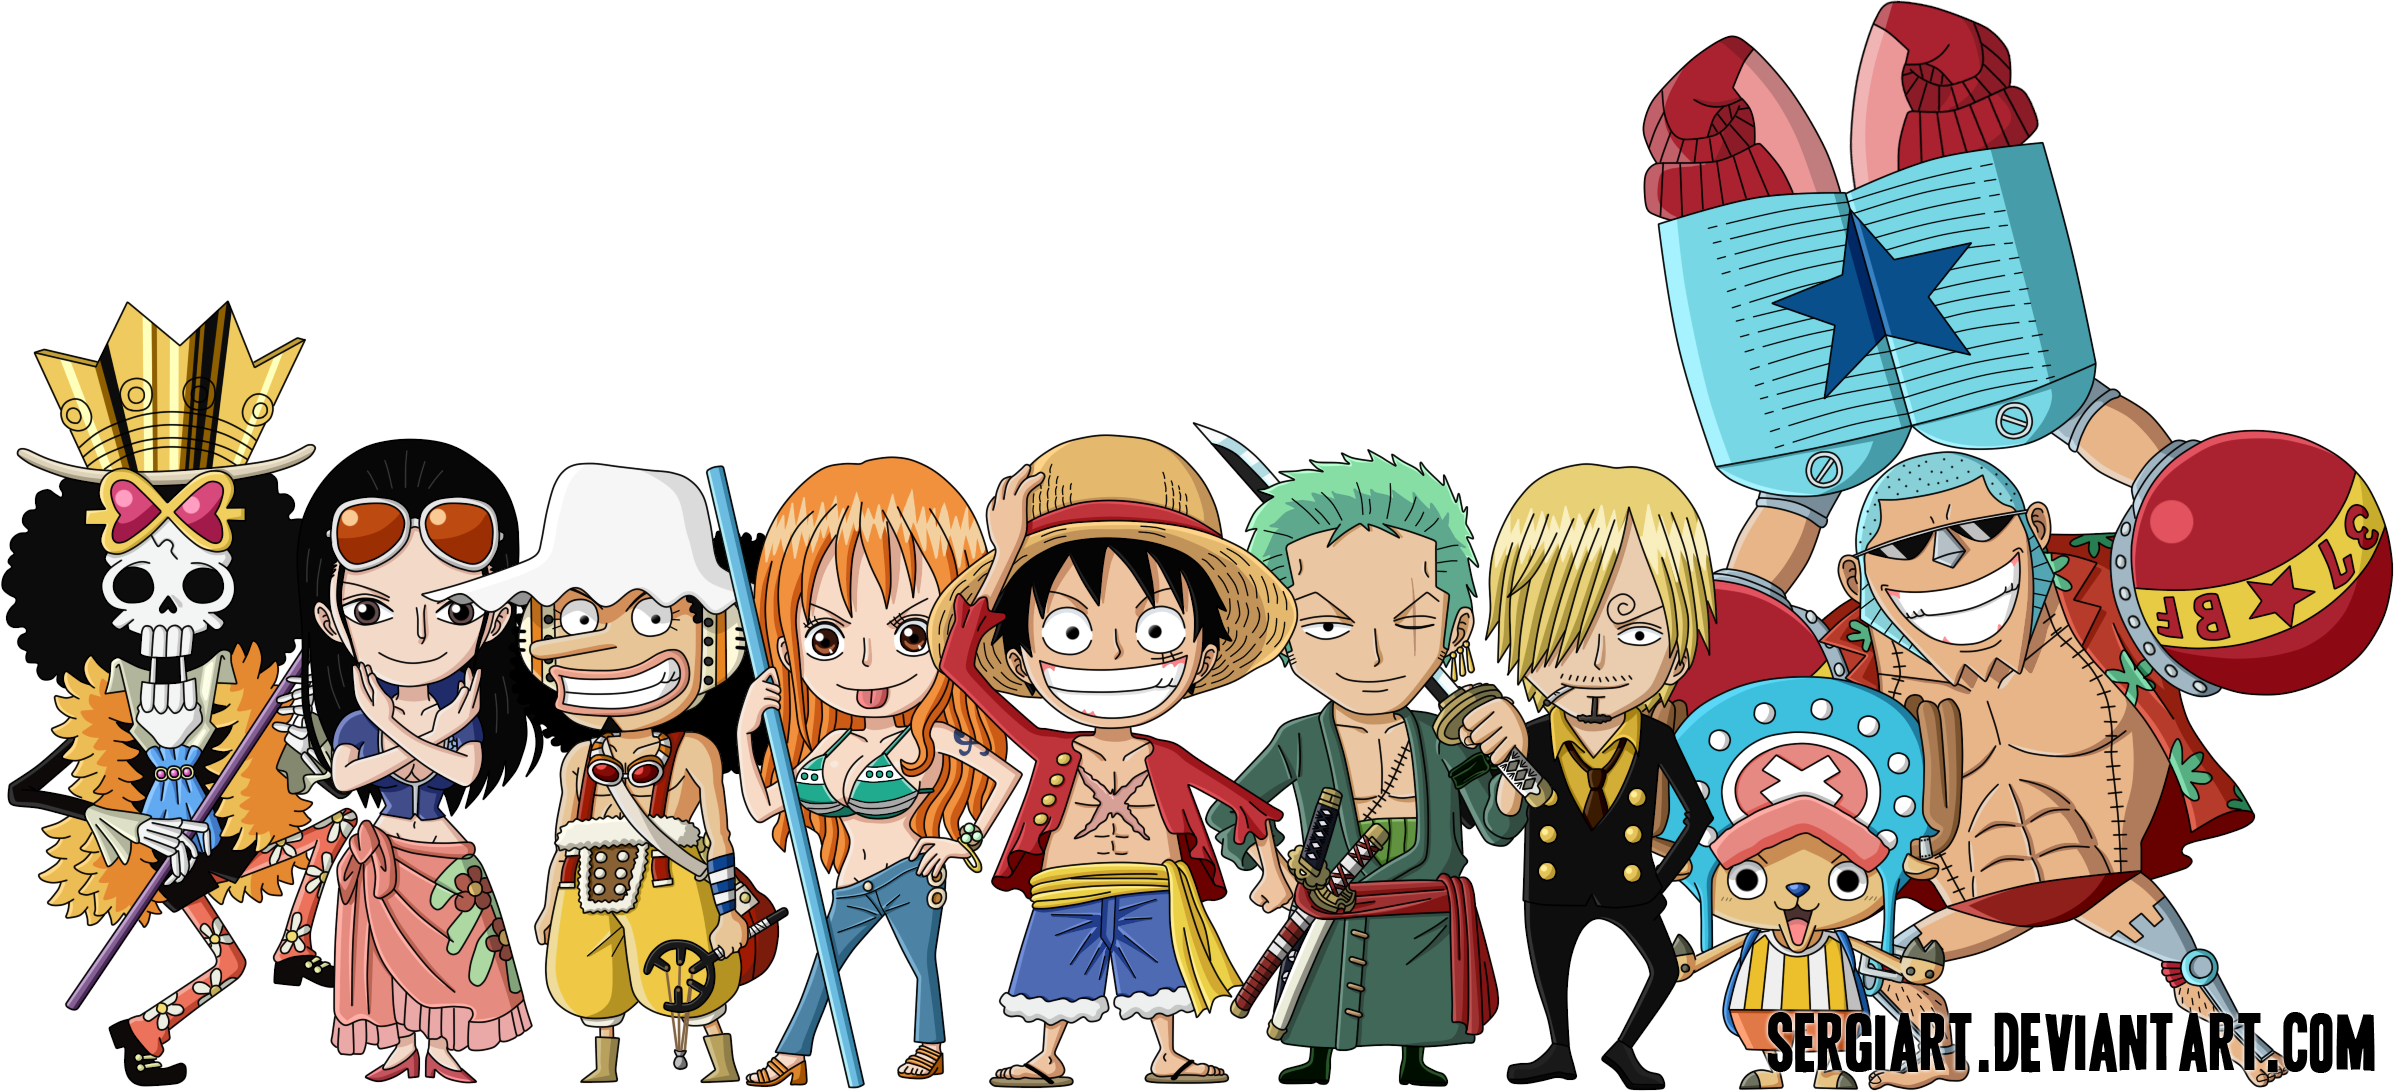 Chibi Straw Hat Pirates by SergiART 2394x1091